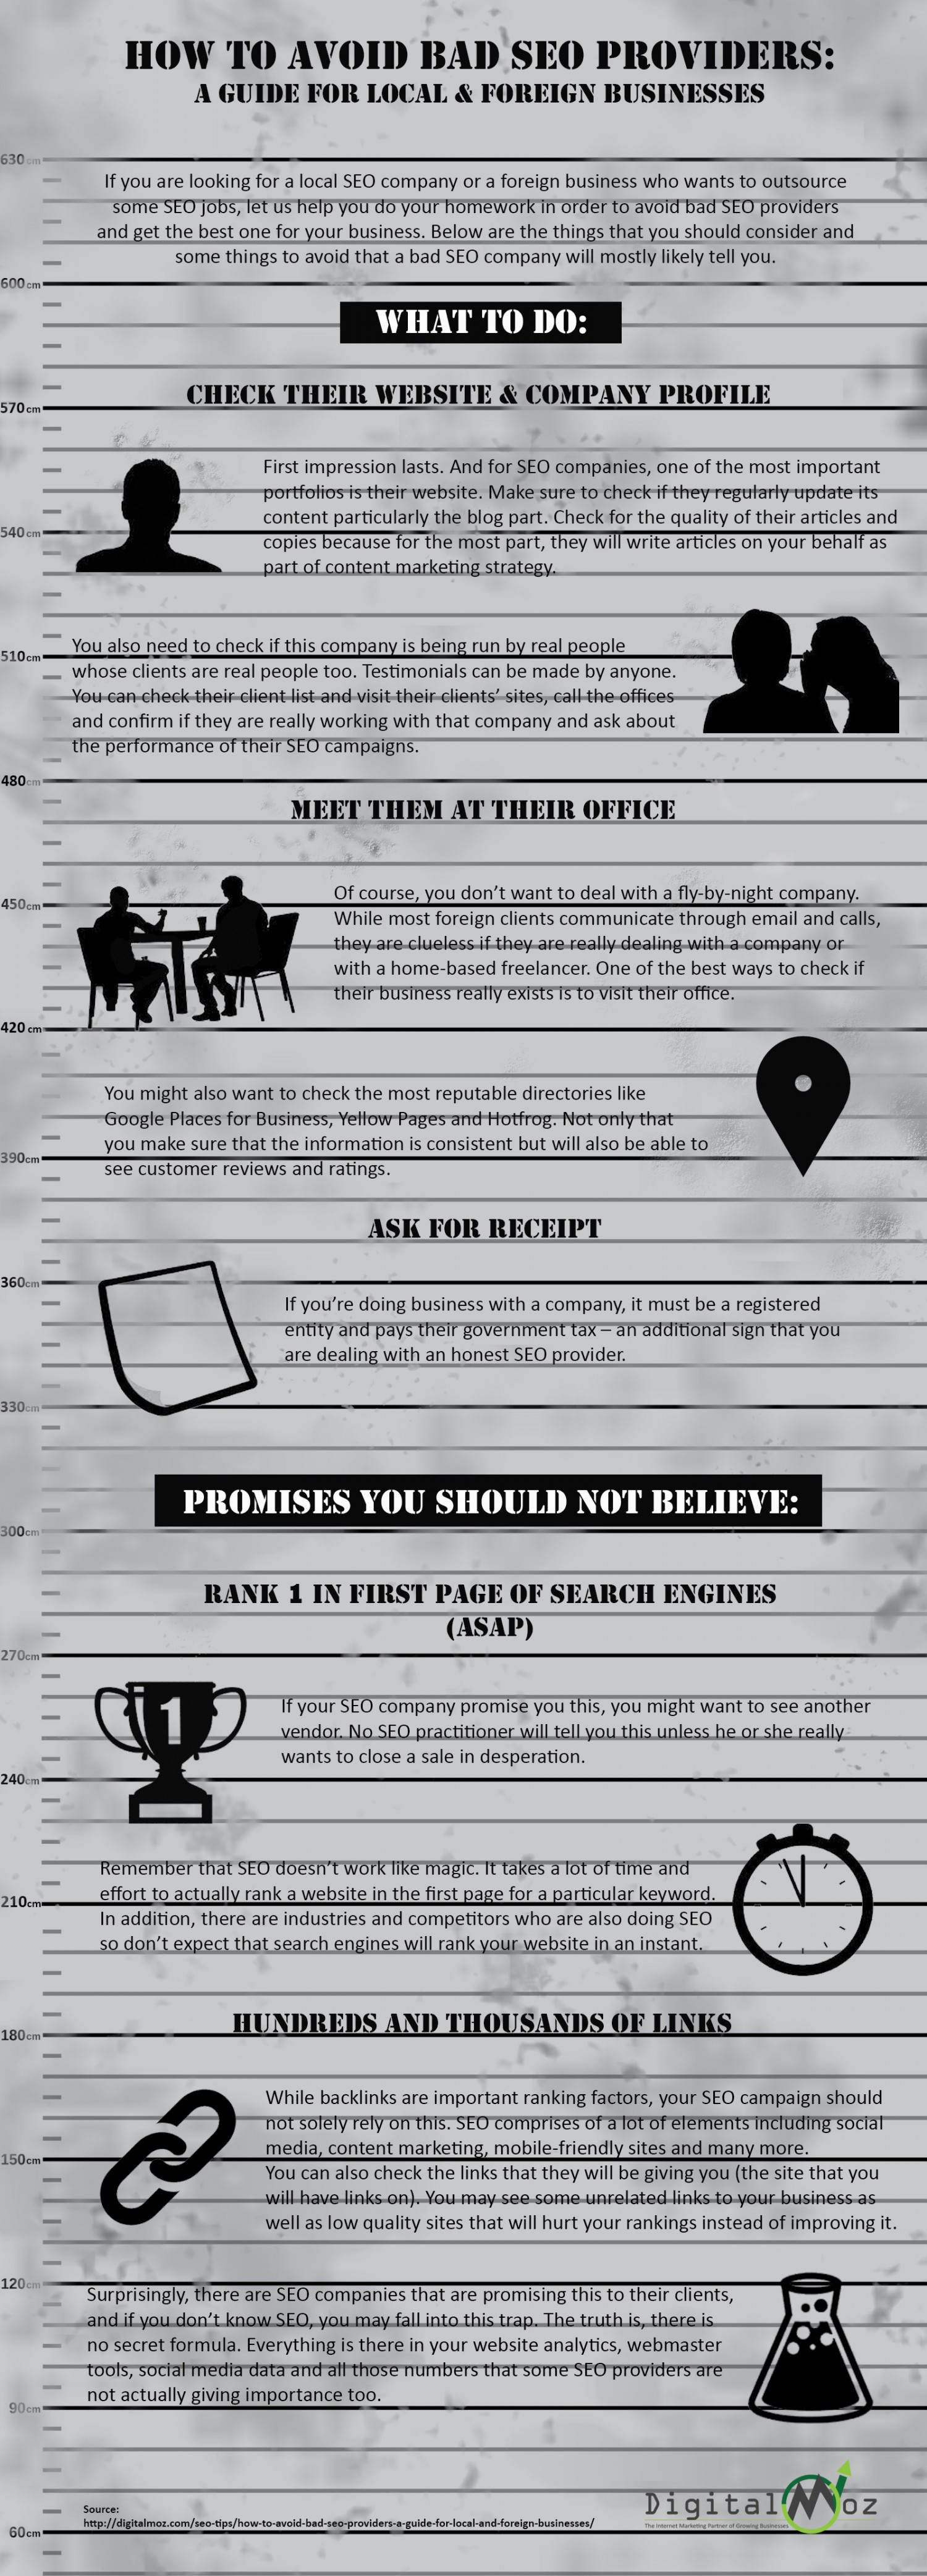 How To Avoid Bad SEO Providers: A Guide for Local & Foreign Businesses Infographic